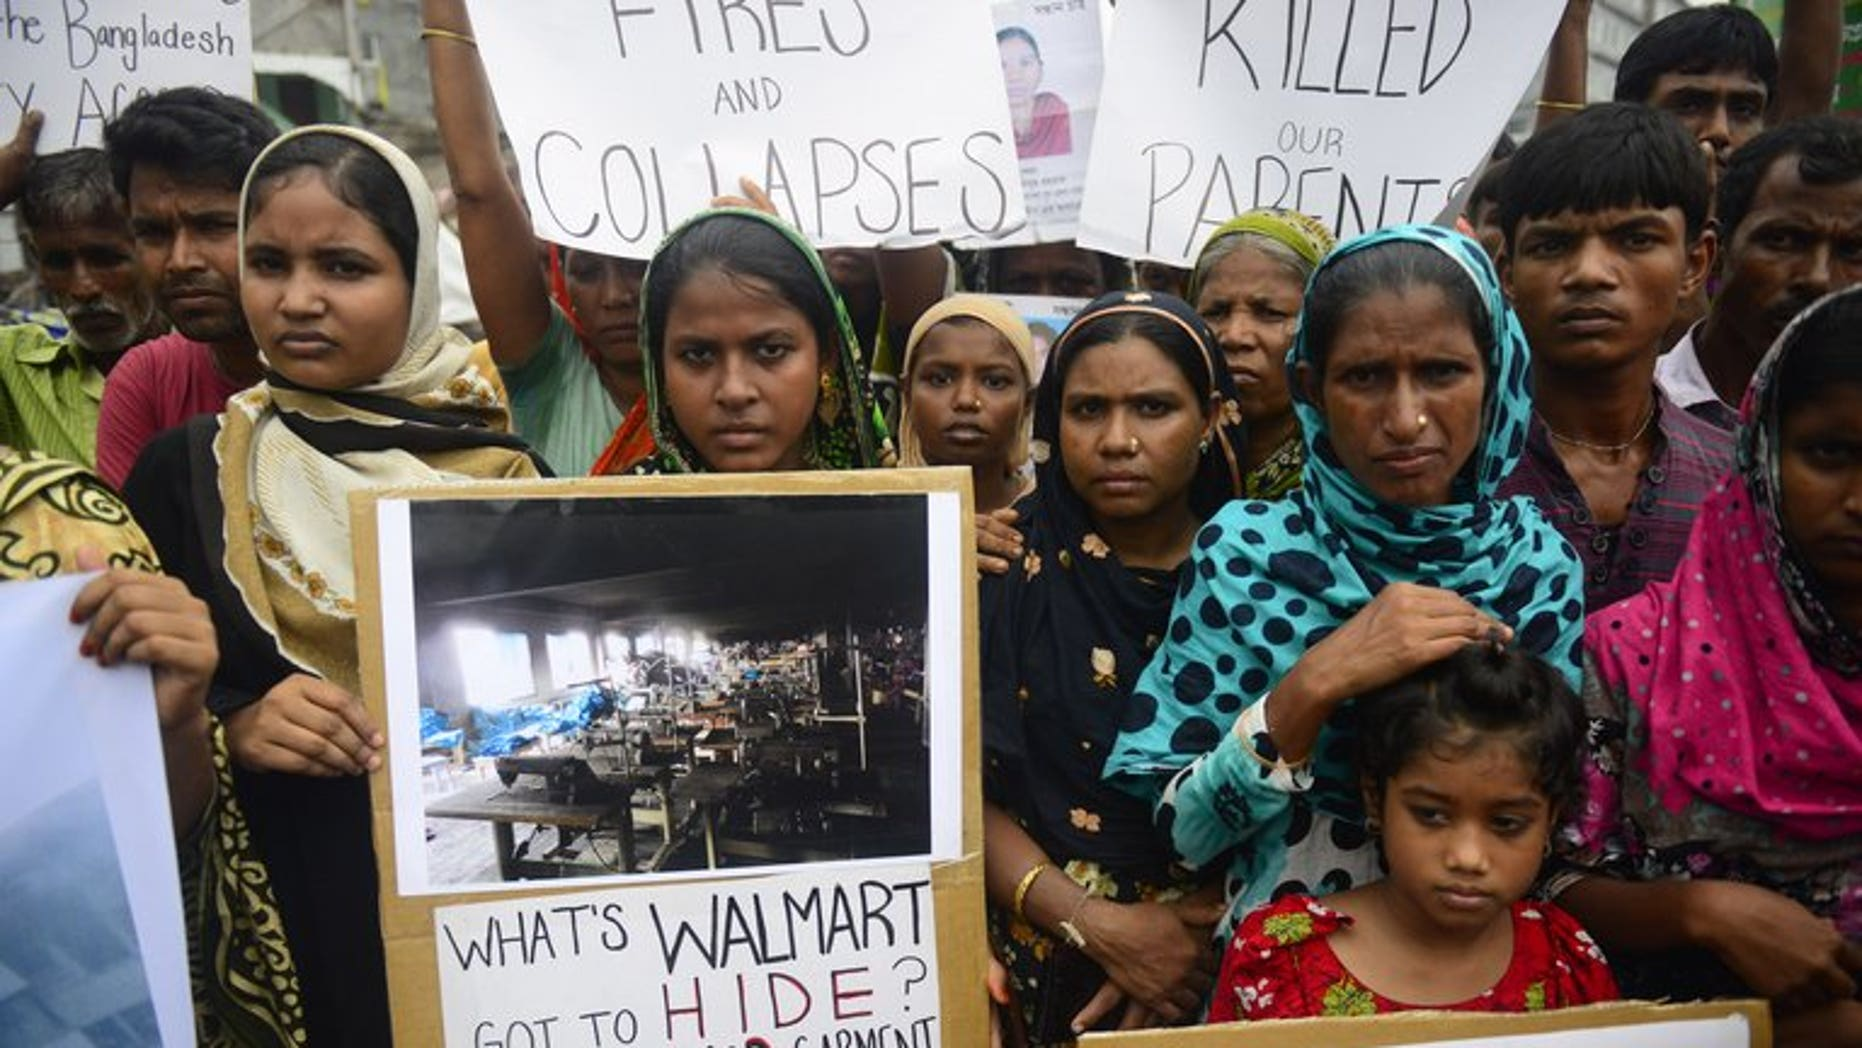 Relatives of workers who lost their lives in a garment factory disaster rally in Savar near Dhaka on Saturday. About 450 employees fell ill on Sunday after complaining of contaminated water at their workplace near the Bangladeshi capital, the second such incident to hit the same garment factory in recent days, police said.